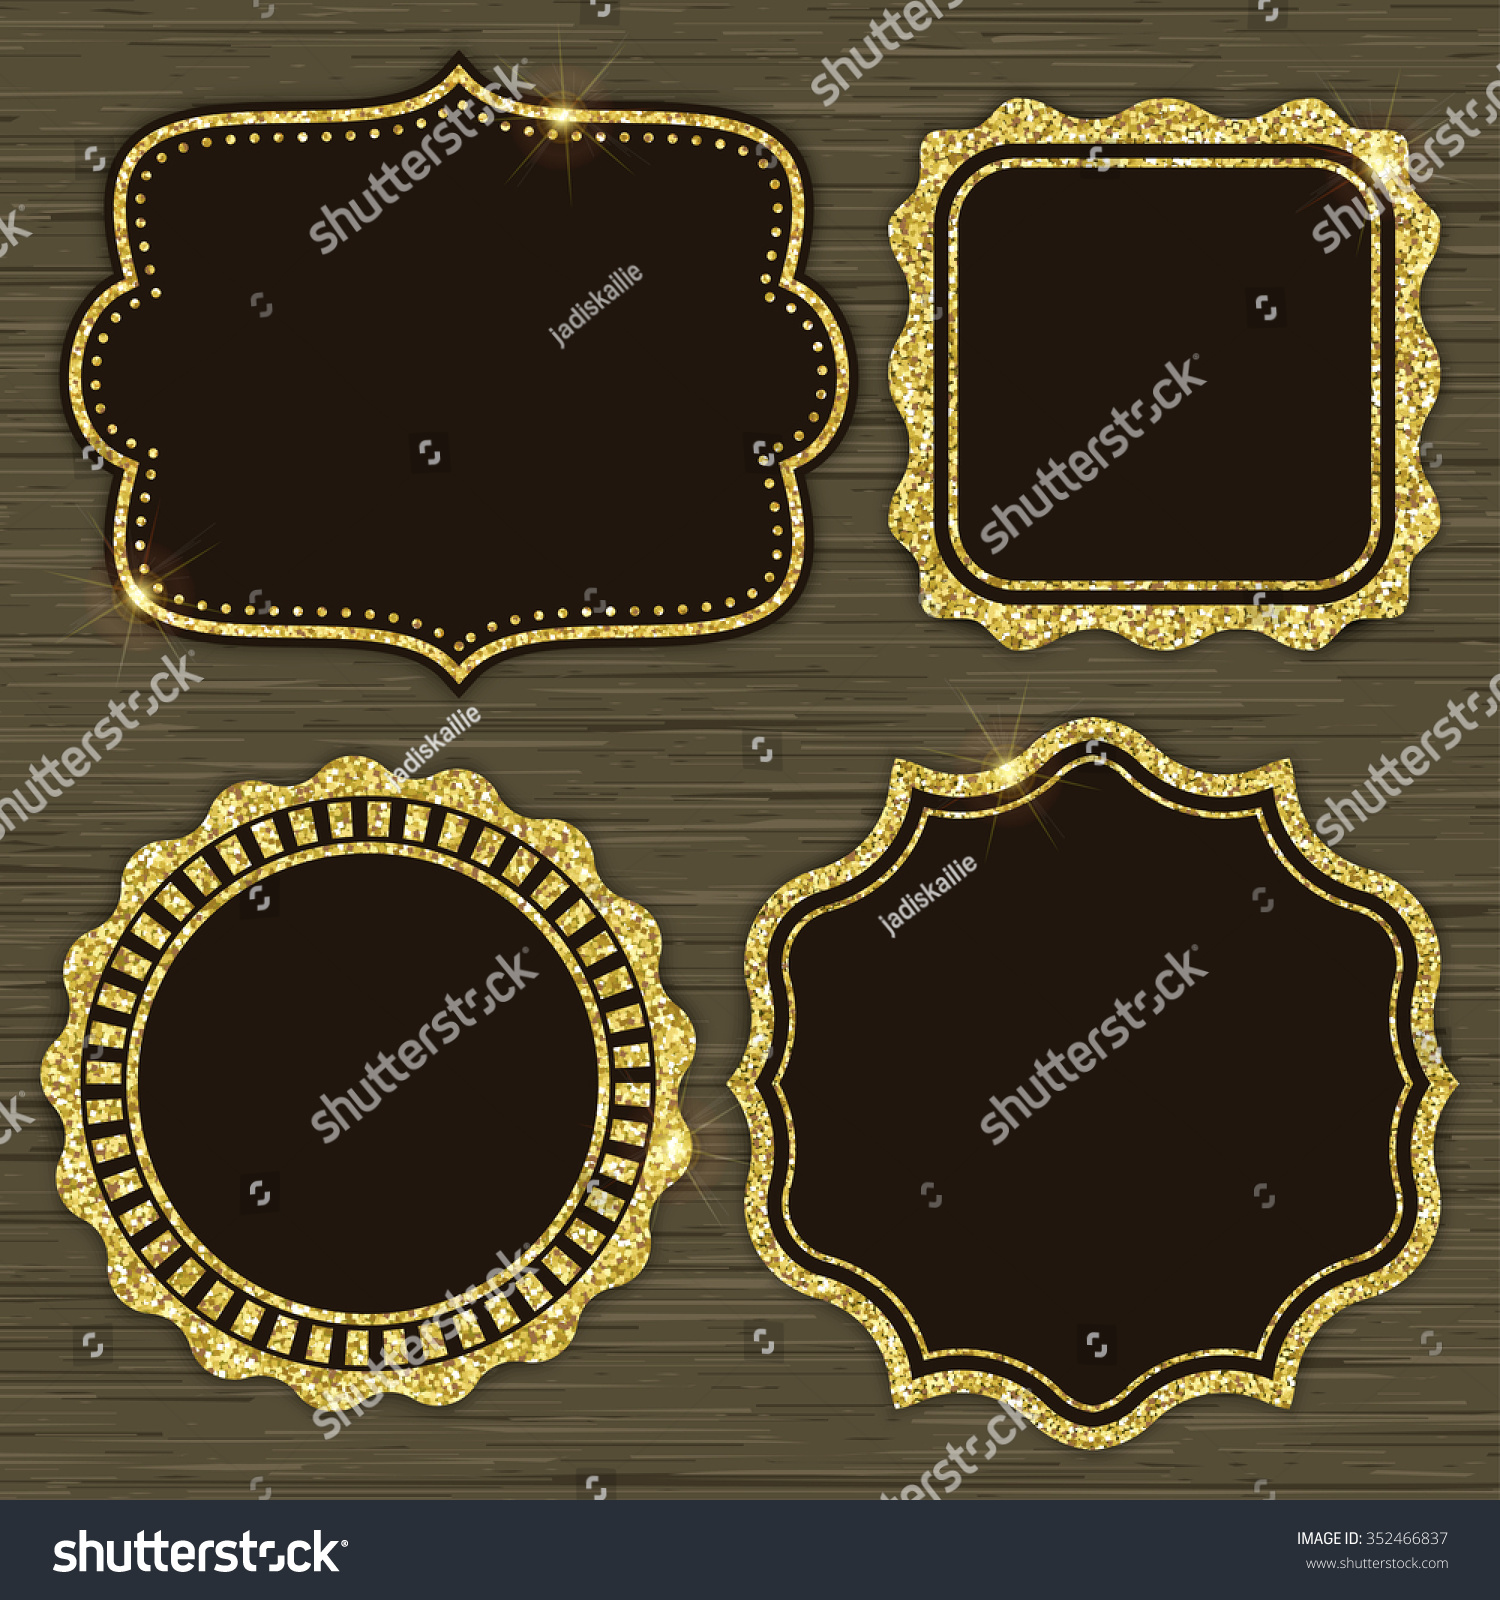 Set 4 gold glitter frames holiday stock vector 352466837 set of 4 gold glitter frames for holiday designs or invitations vector illustration stopboris